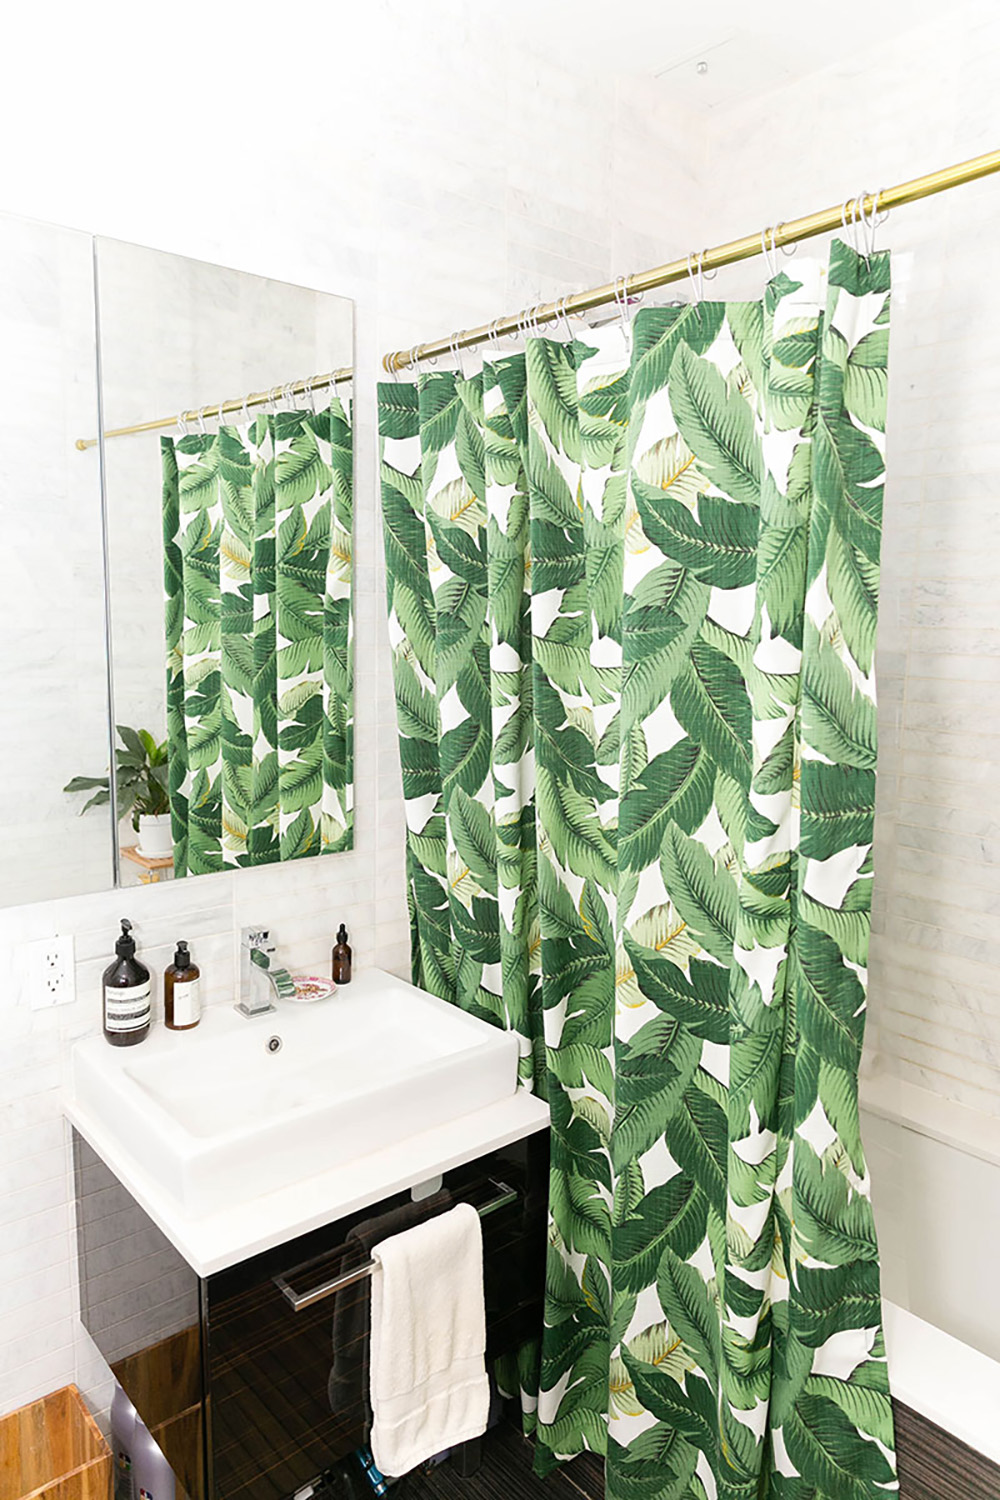 Tropical Plant Banana Palm Leaves Bath Curtain   Bathroom With Banana Leaves   Transform Your Home